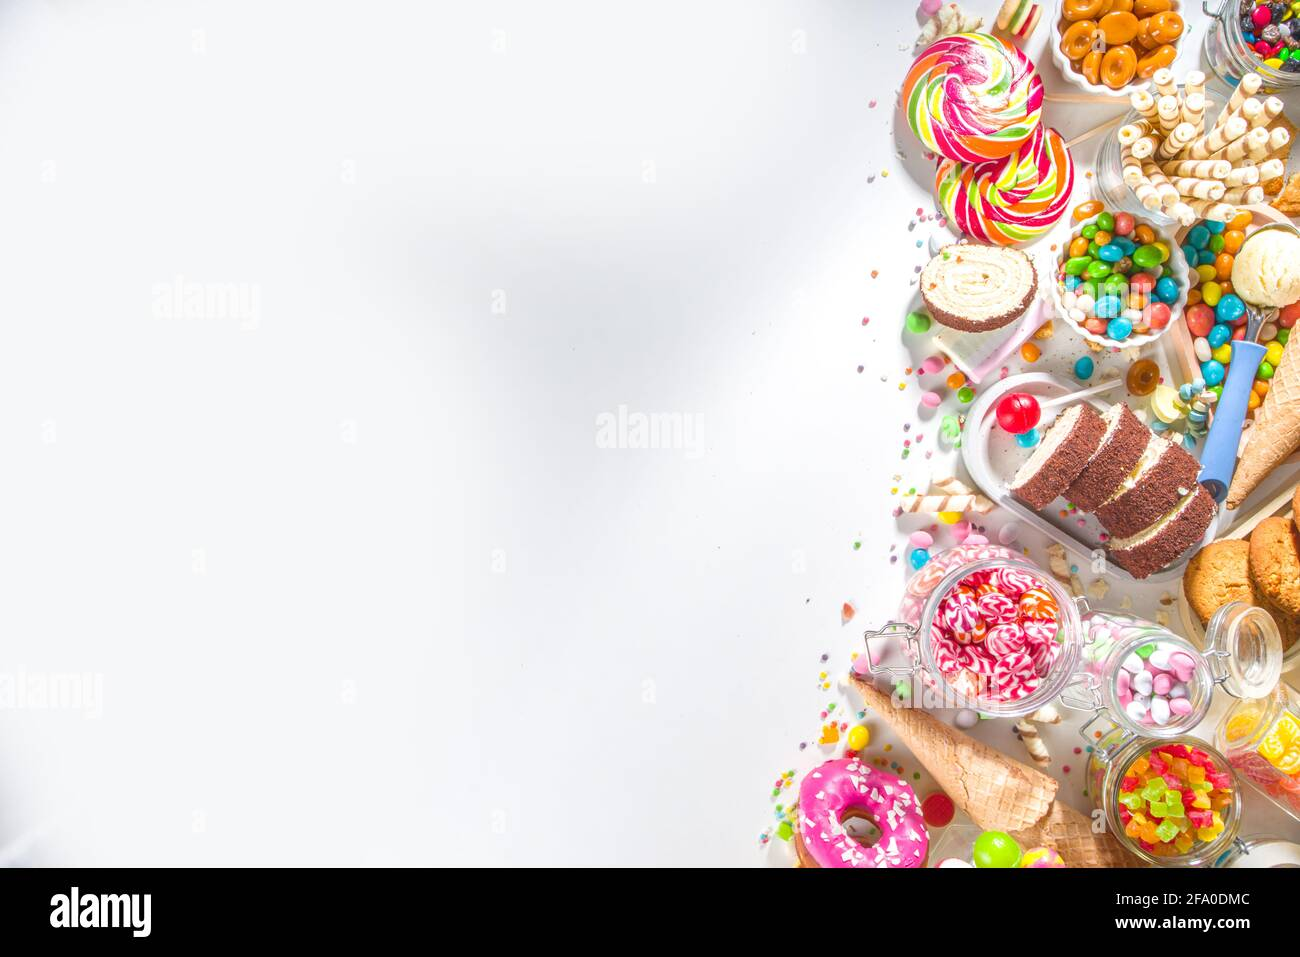 Selection of colorful sweets. Set of various candies, chocolates, donuts, cookies, lollipops, ice cream top view on white background Stock Photo